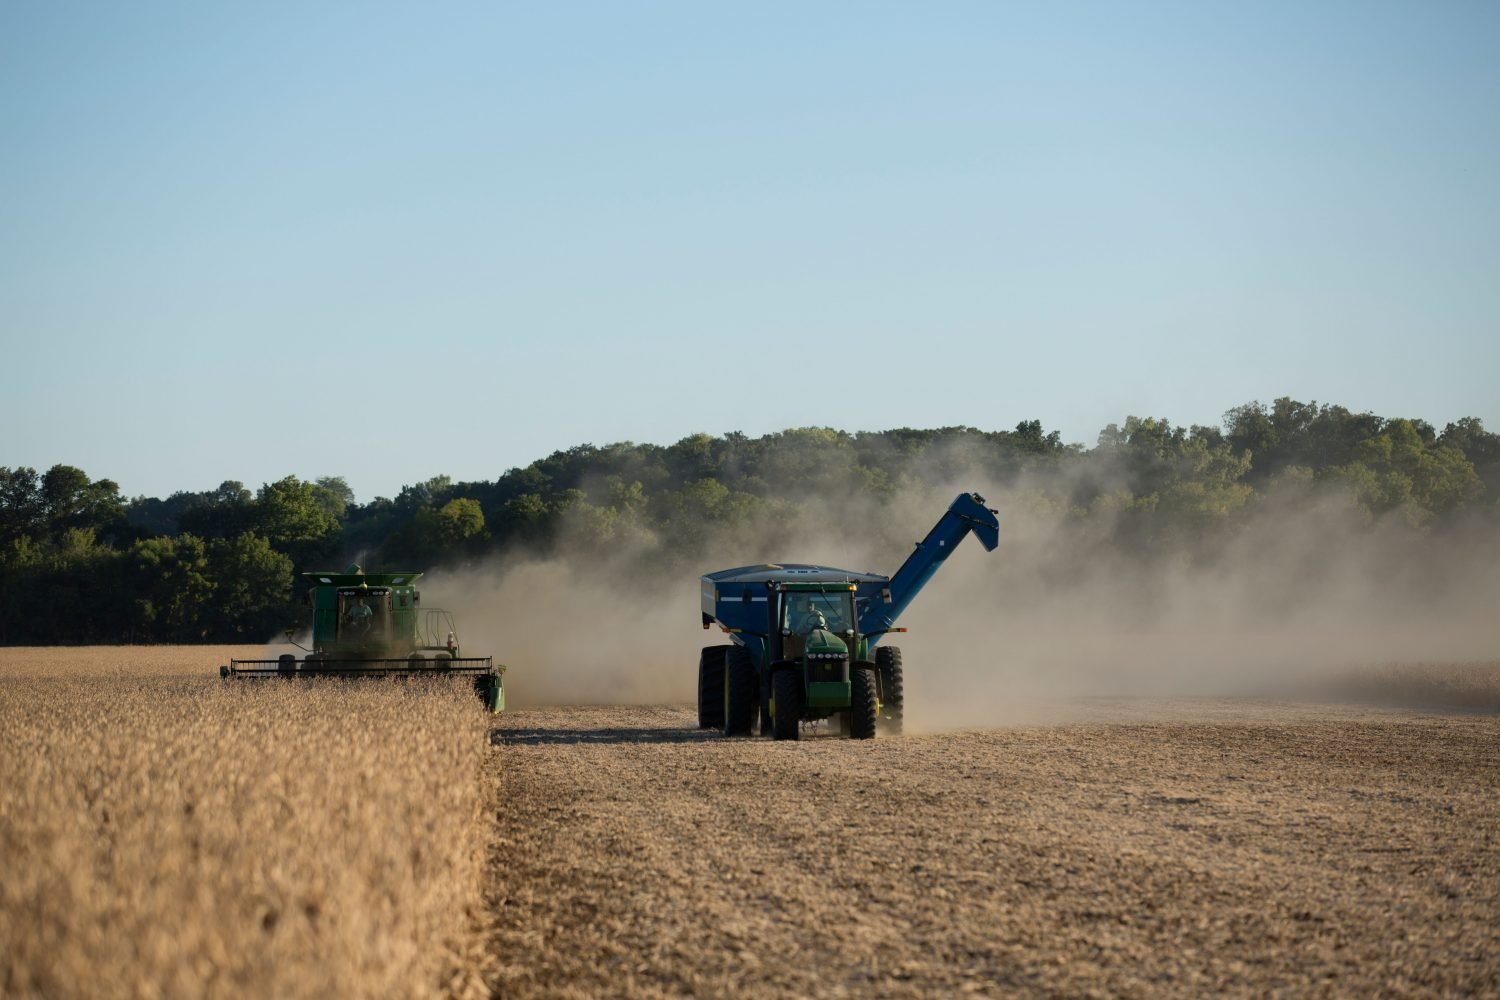 Filling grain loads during a chaotic harvest season